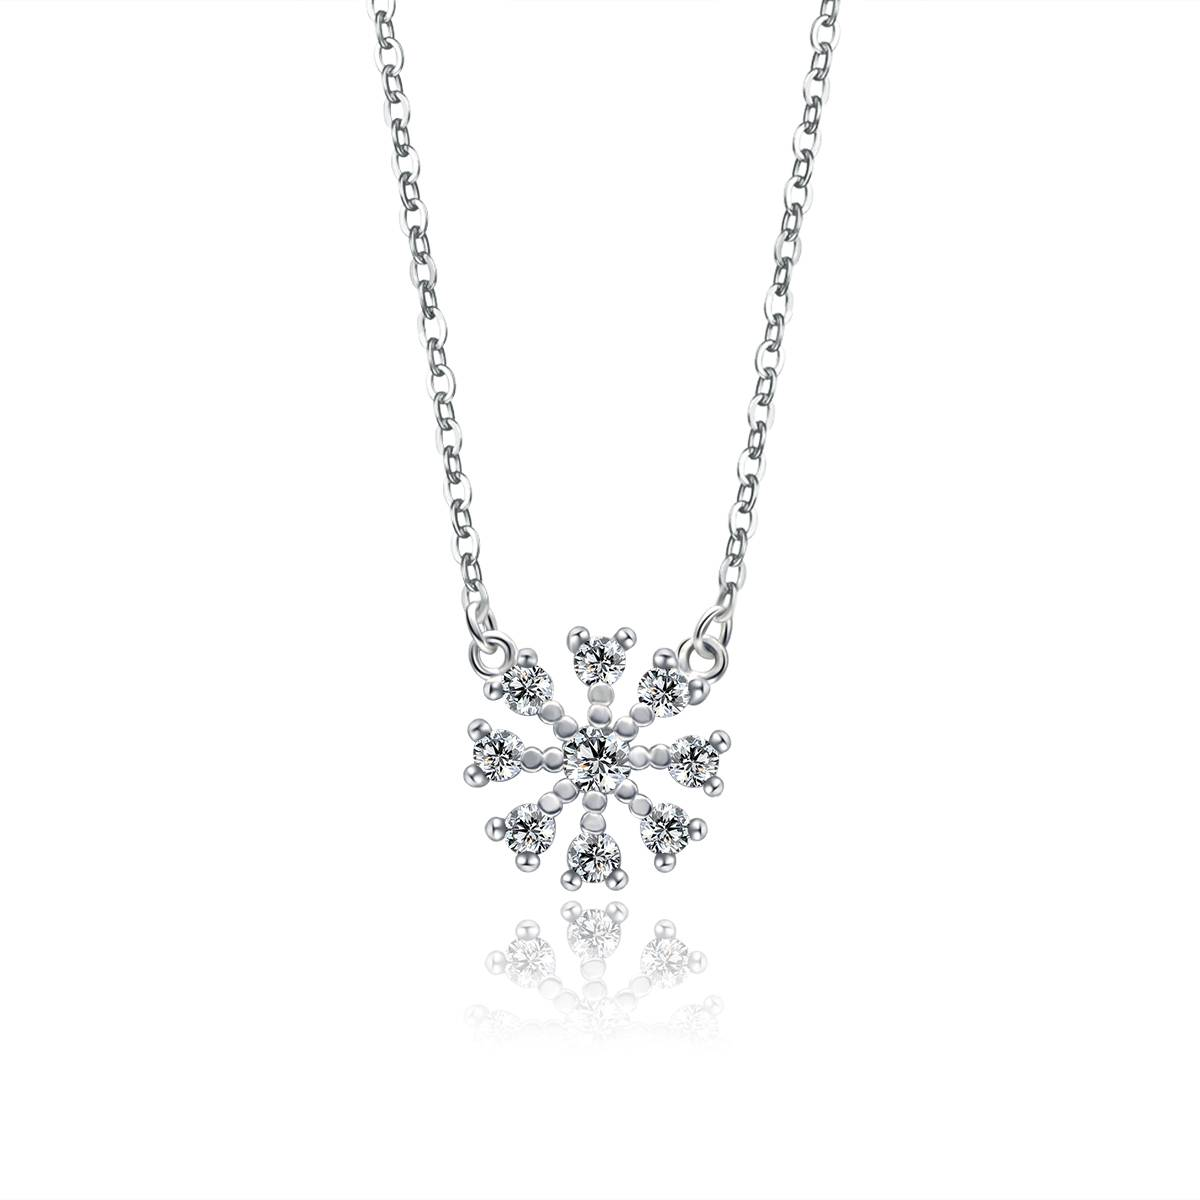 2016 new design 925 sterling silver necklace snowflake shape gift jewelry wholesale